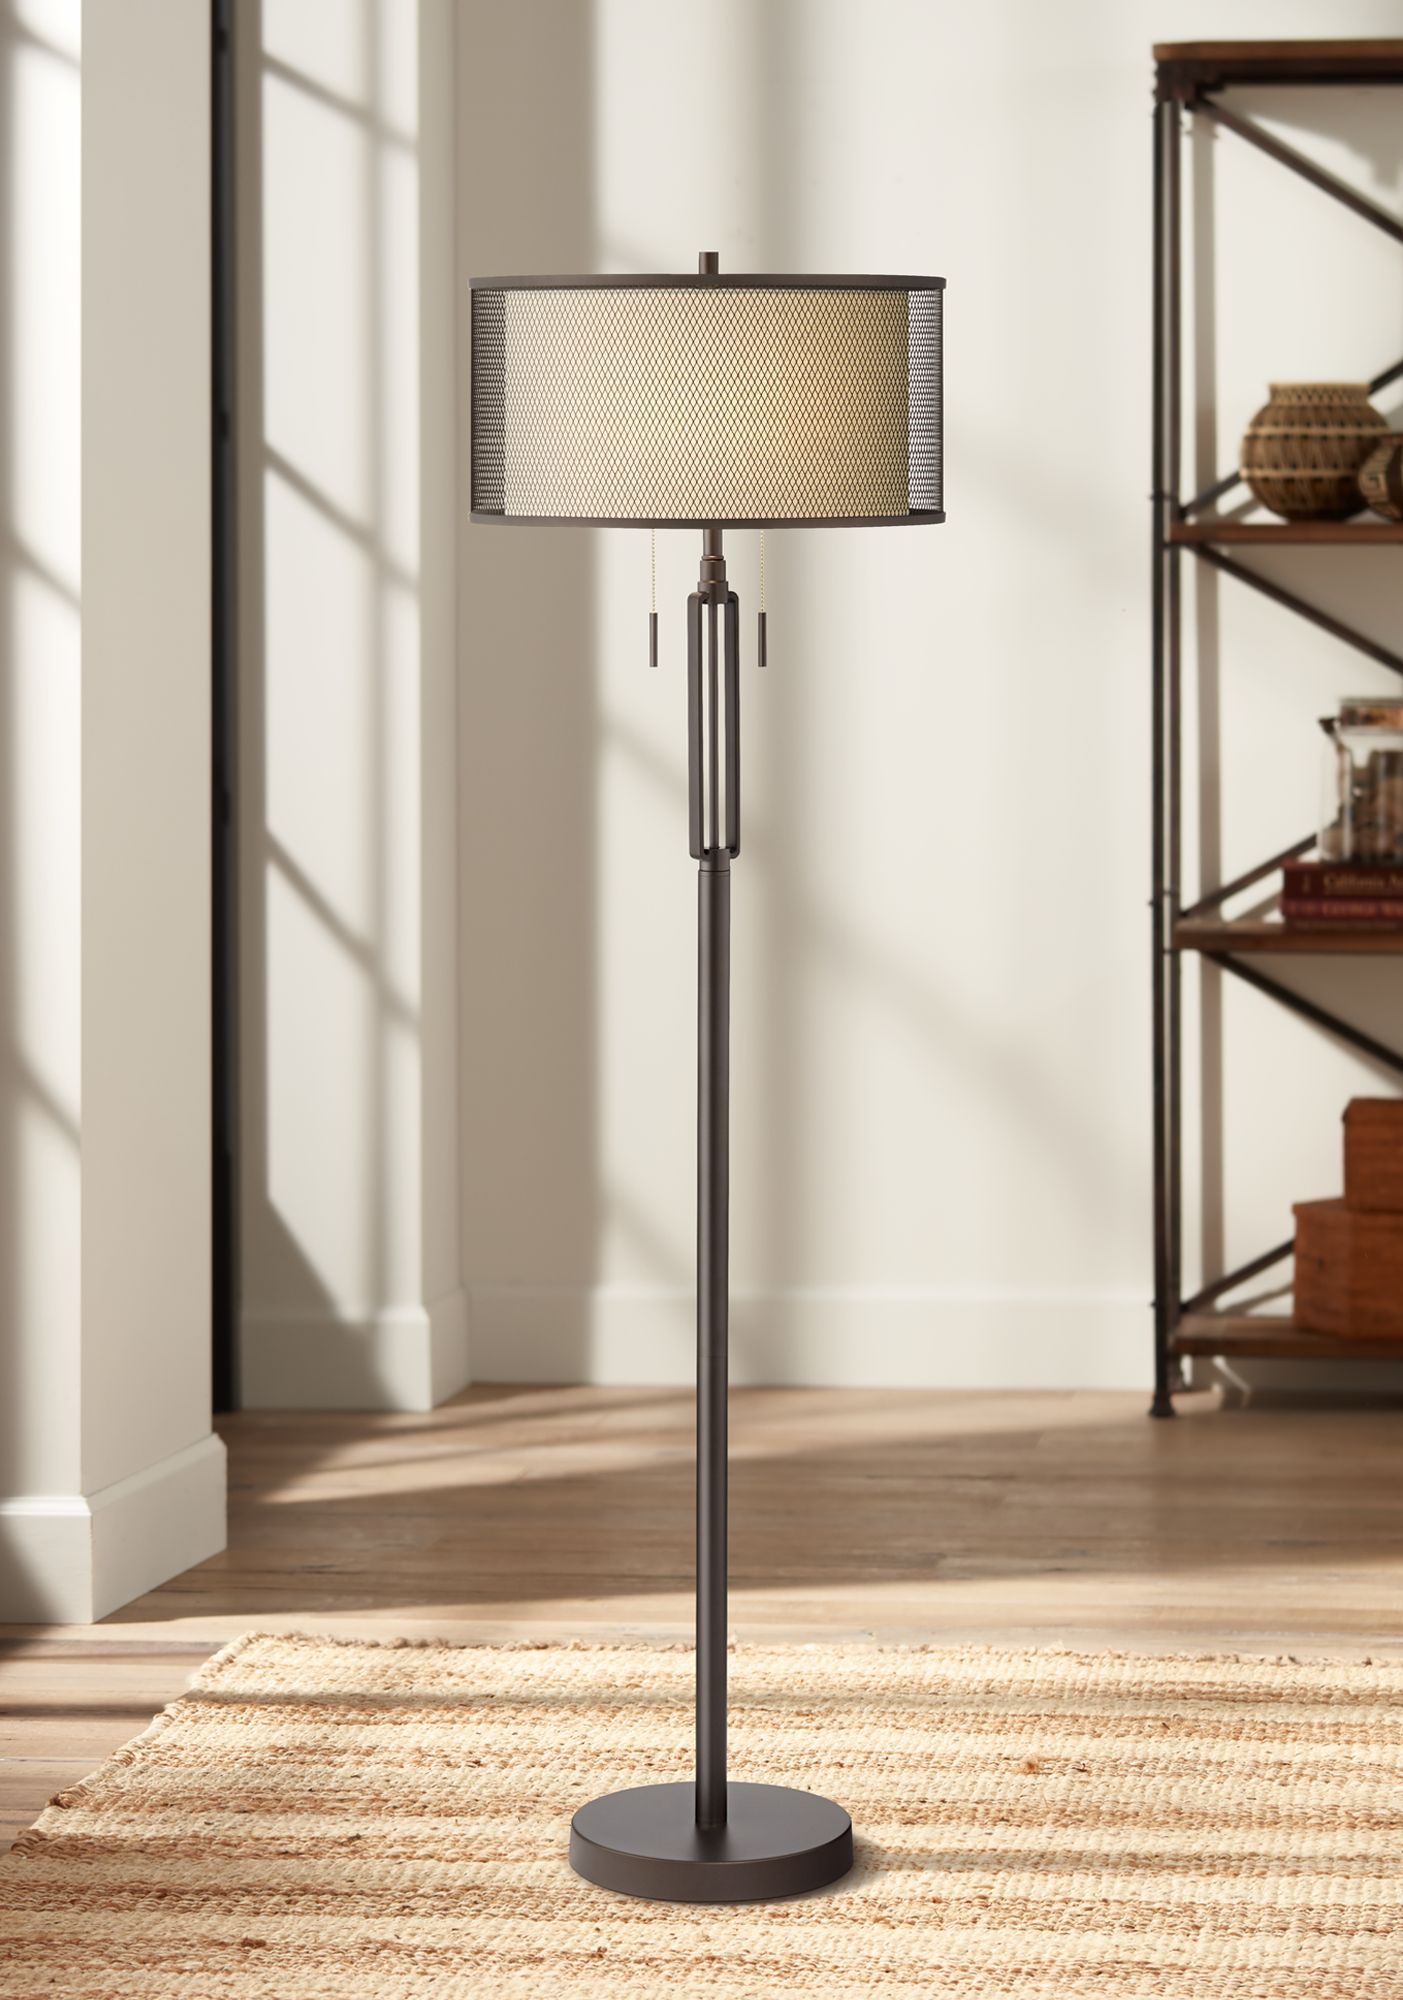 Delightful Franklin Iron Works Turnbuckle Floor Lamp With Double Shade